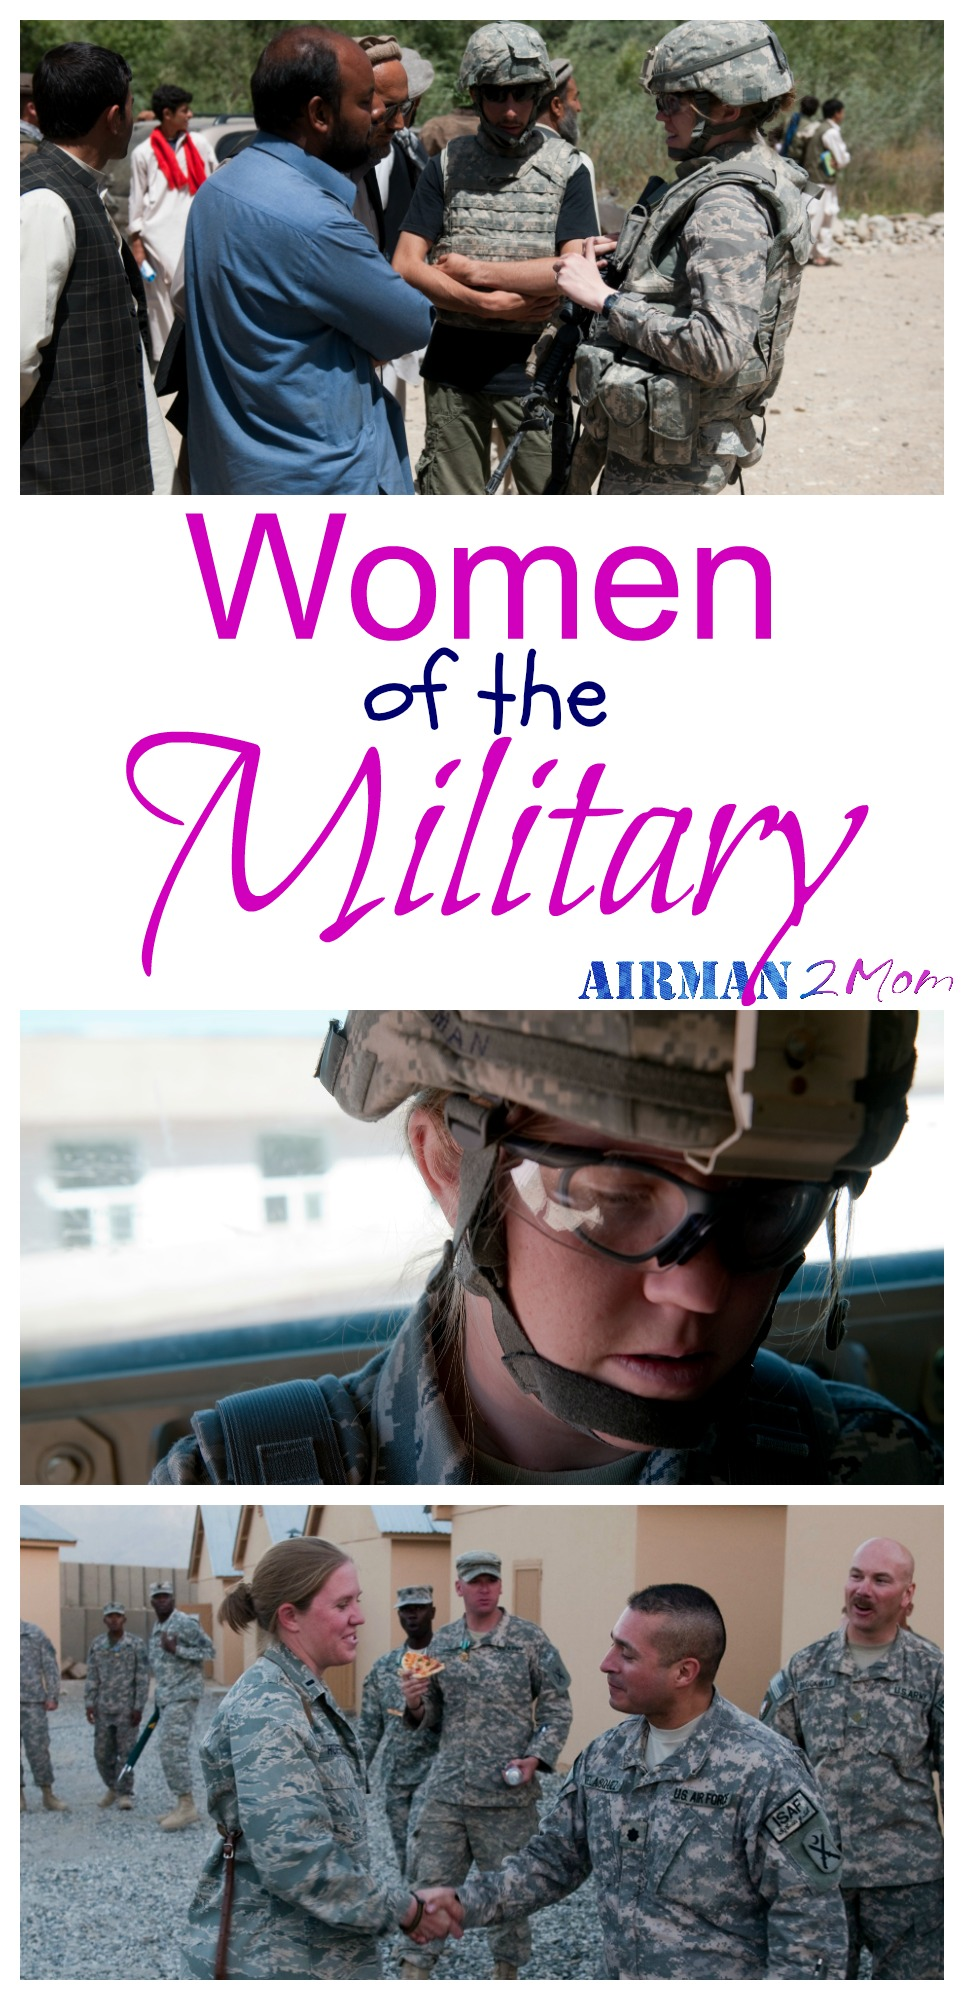 Calling all females who have sereved or are serving in the military. I am creating a series to focus on the women in the military. I'd love to include you! #military #femaleveteran #womeninuniform